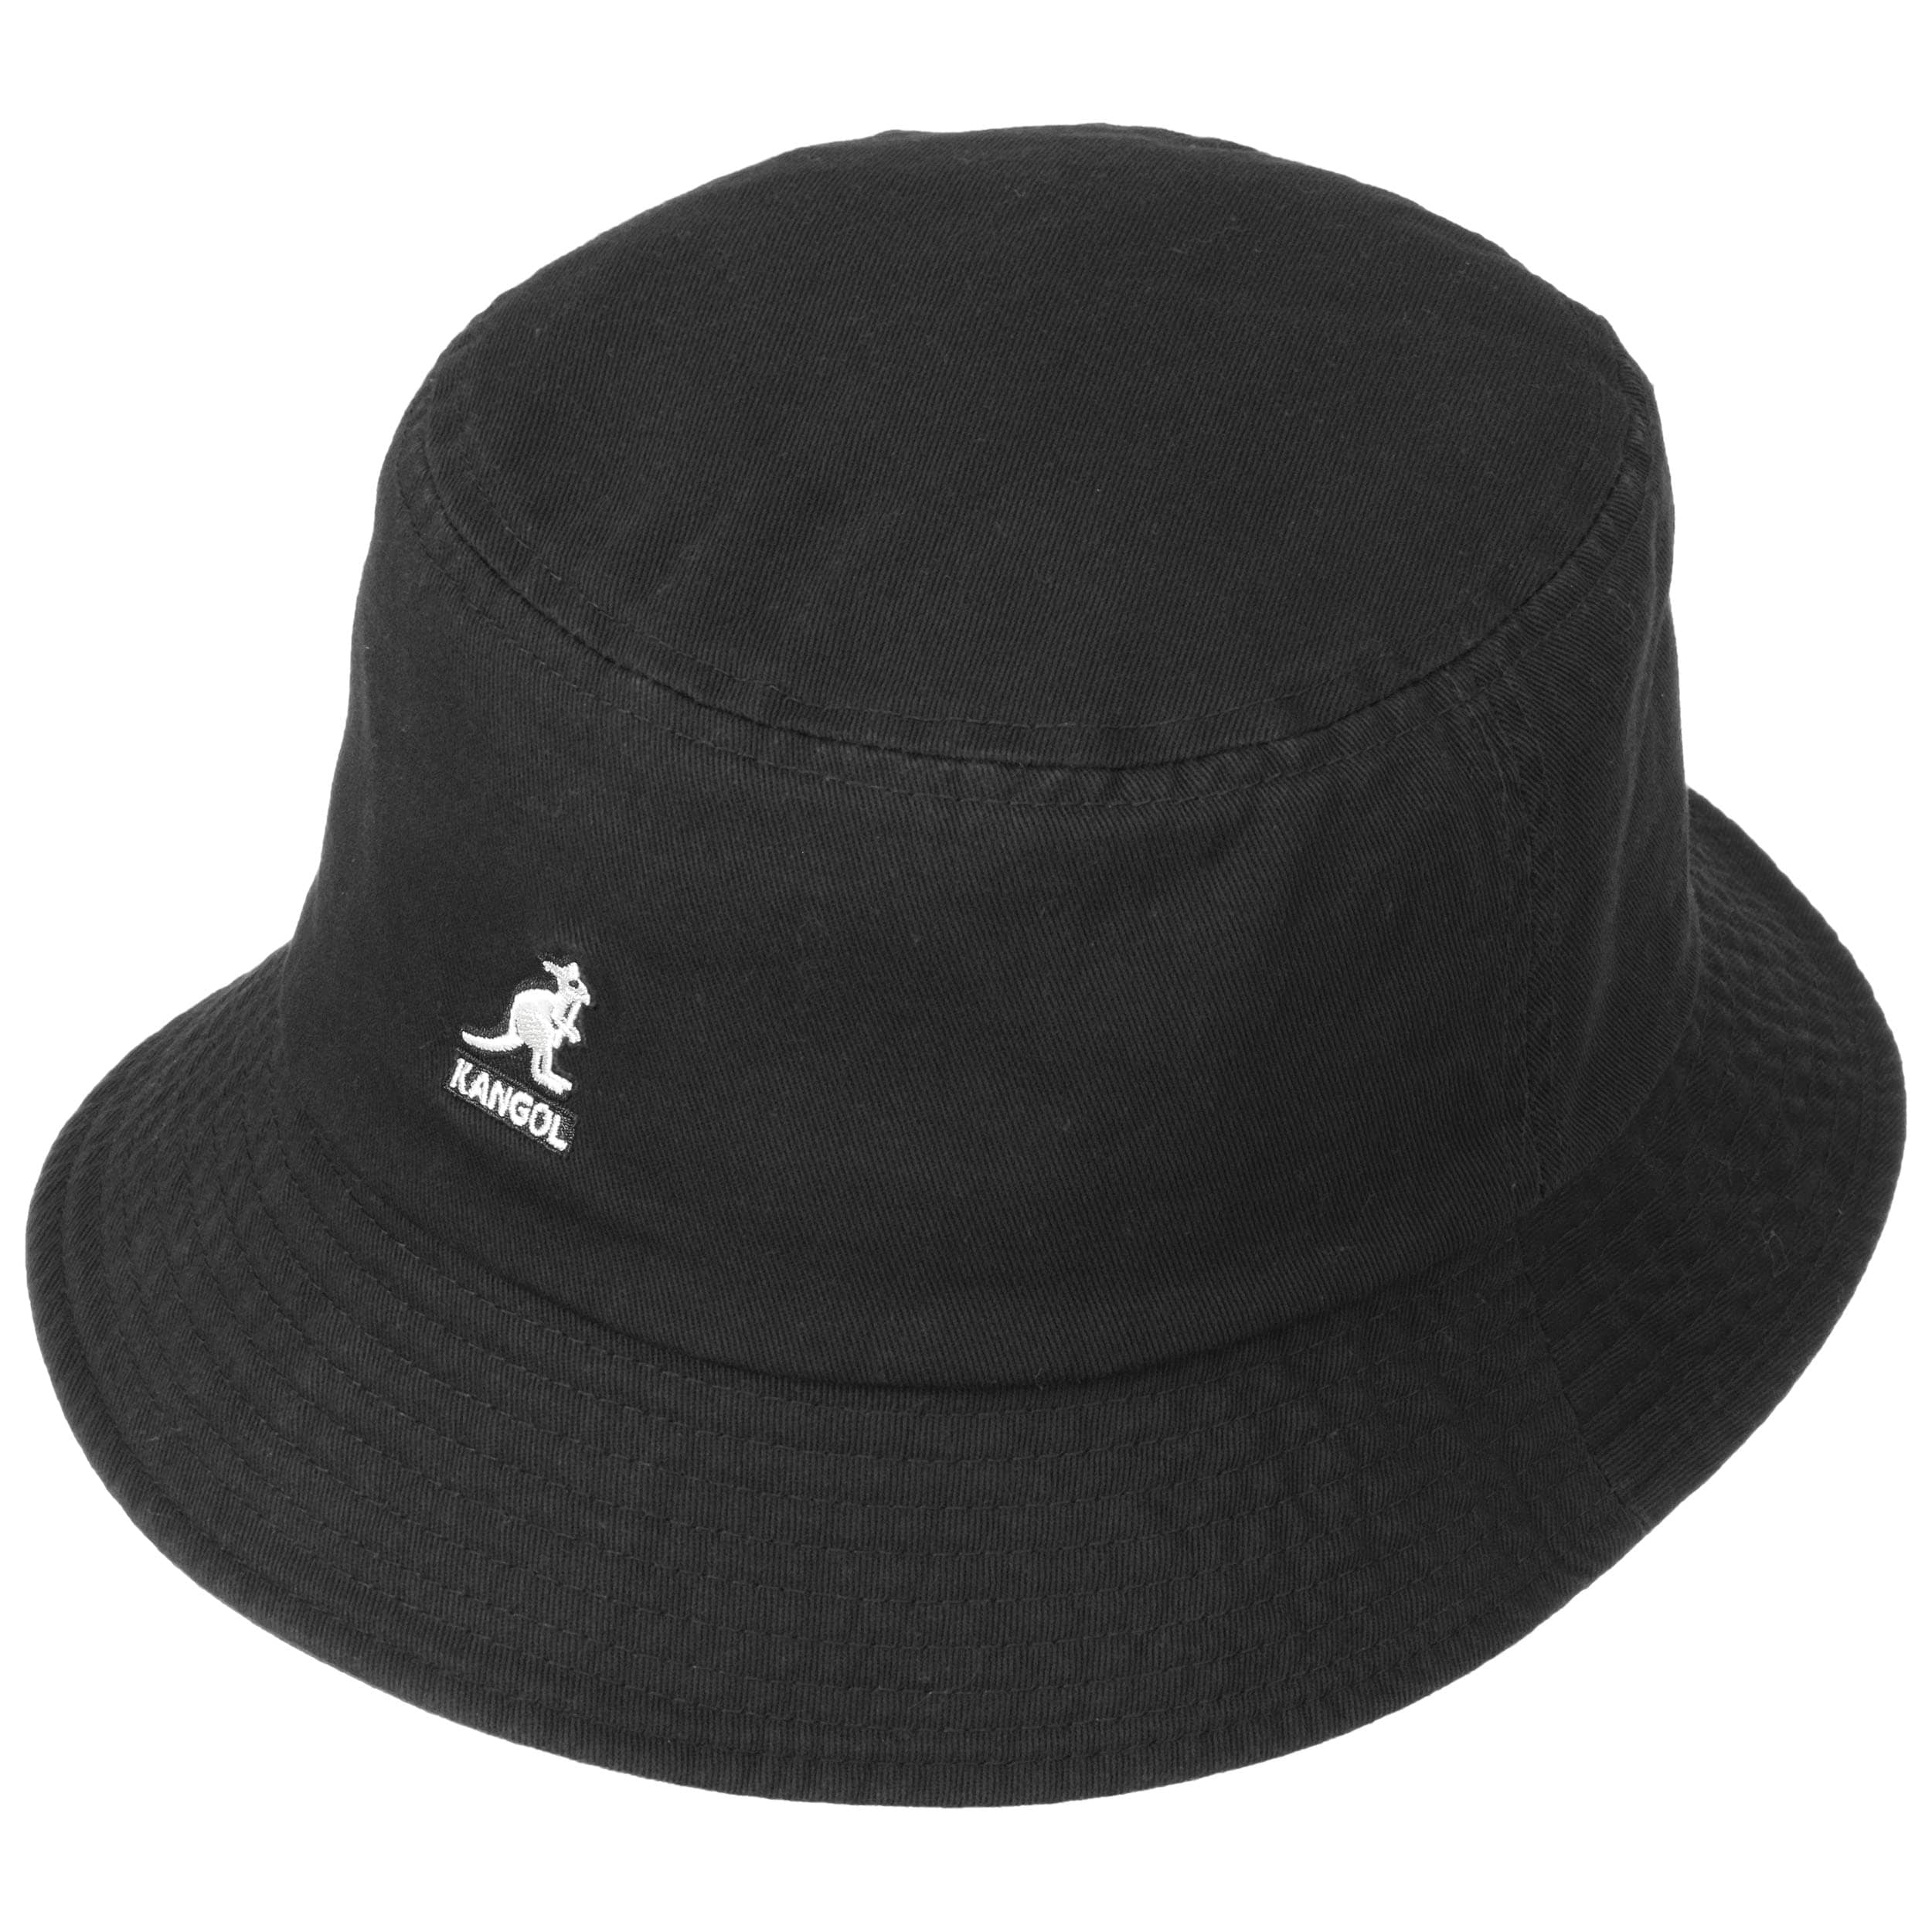 81fecc8d5 Washed Bucket Hat by Kangol